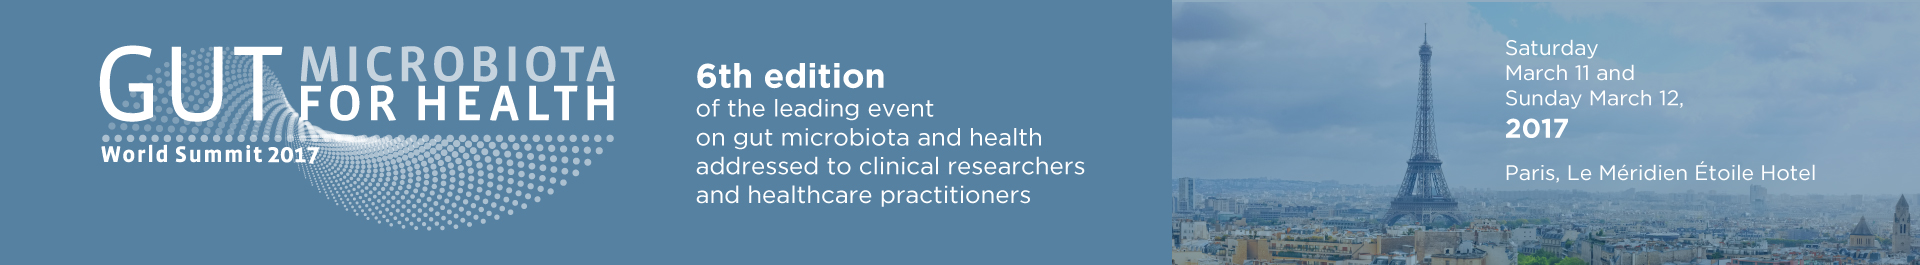 Gut Microbiota for Health World Summit 2017